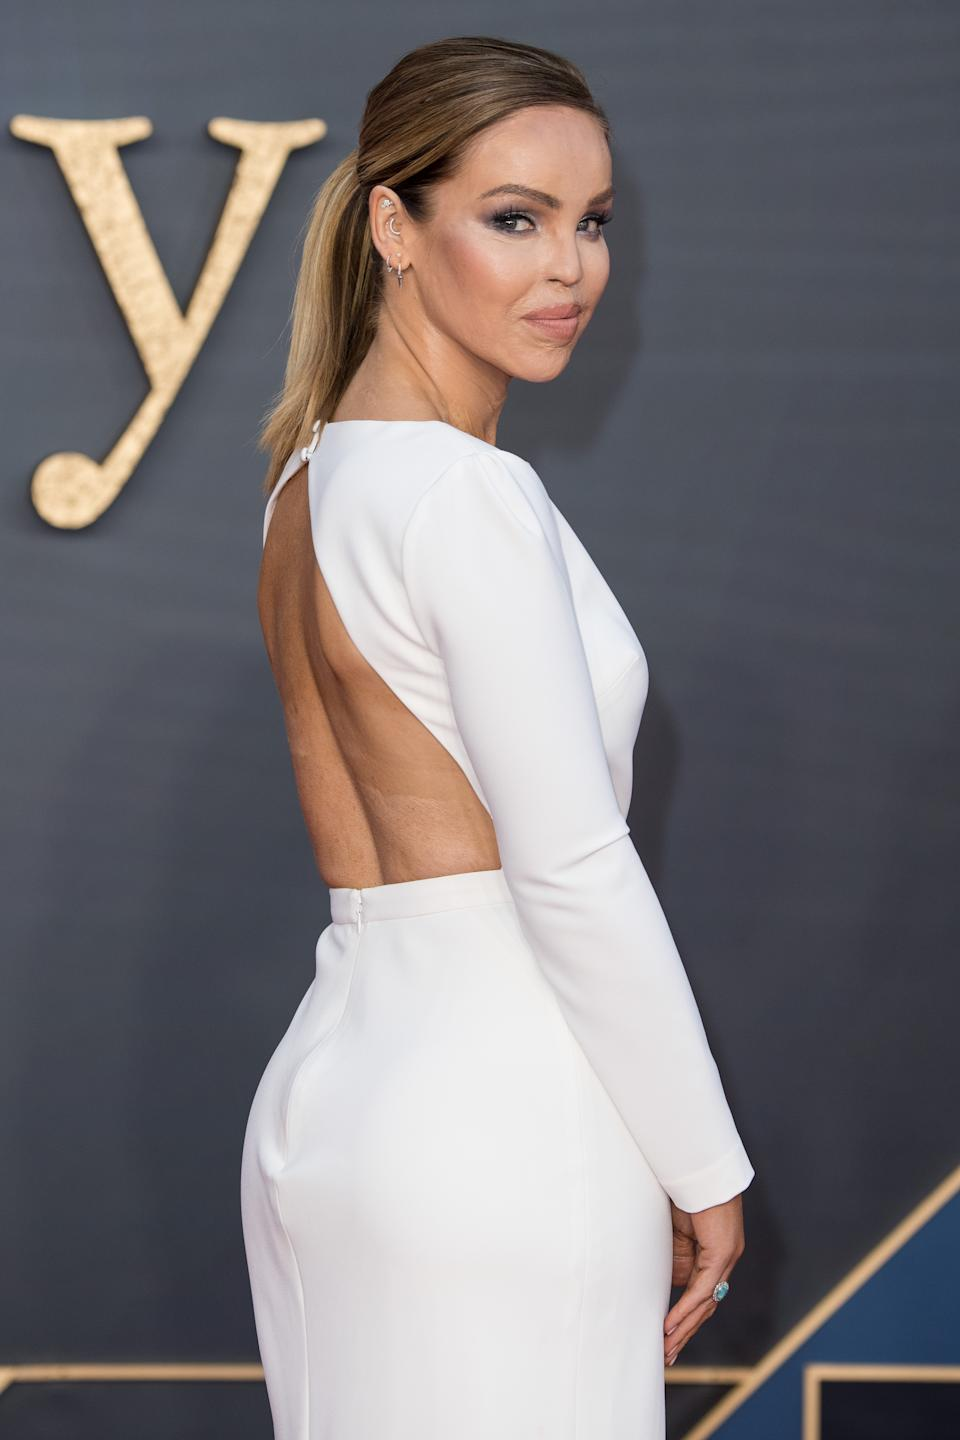 Katie Piper attended the London Premiere wearing a chic, white backless dress by Ted Baker [Photo: Getty Images]